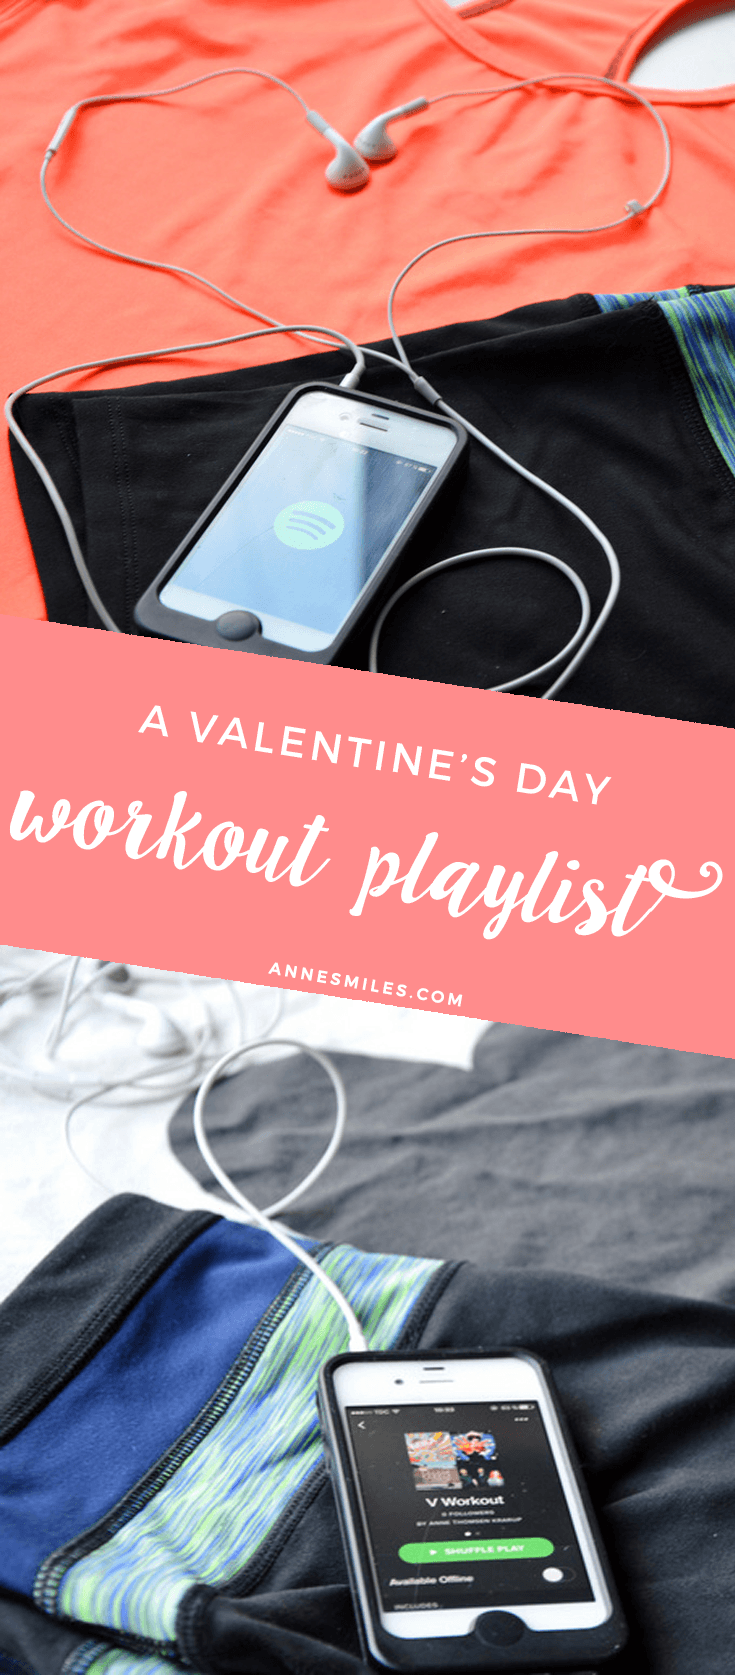 A Valentine's day workout playlist full of love songs to get you pumped || Click through to listen, or repin to save for later!